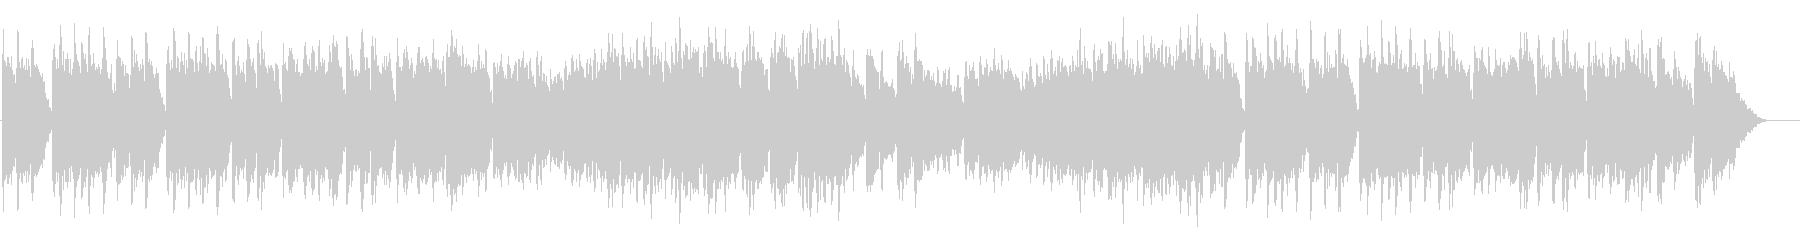 Wedding song style BGM luxurious and solemn's unreproduced waveform